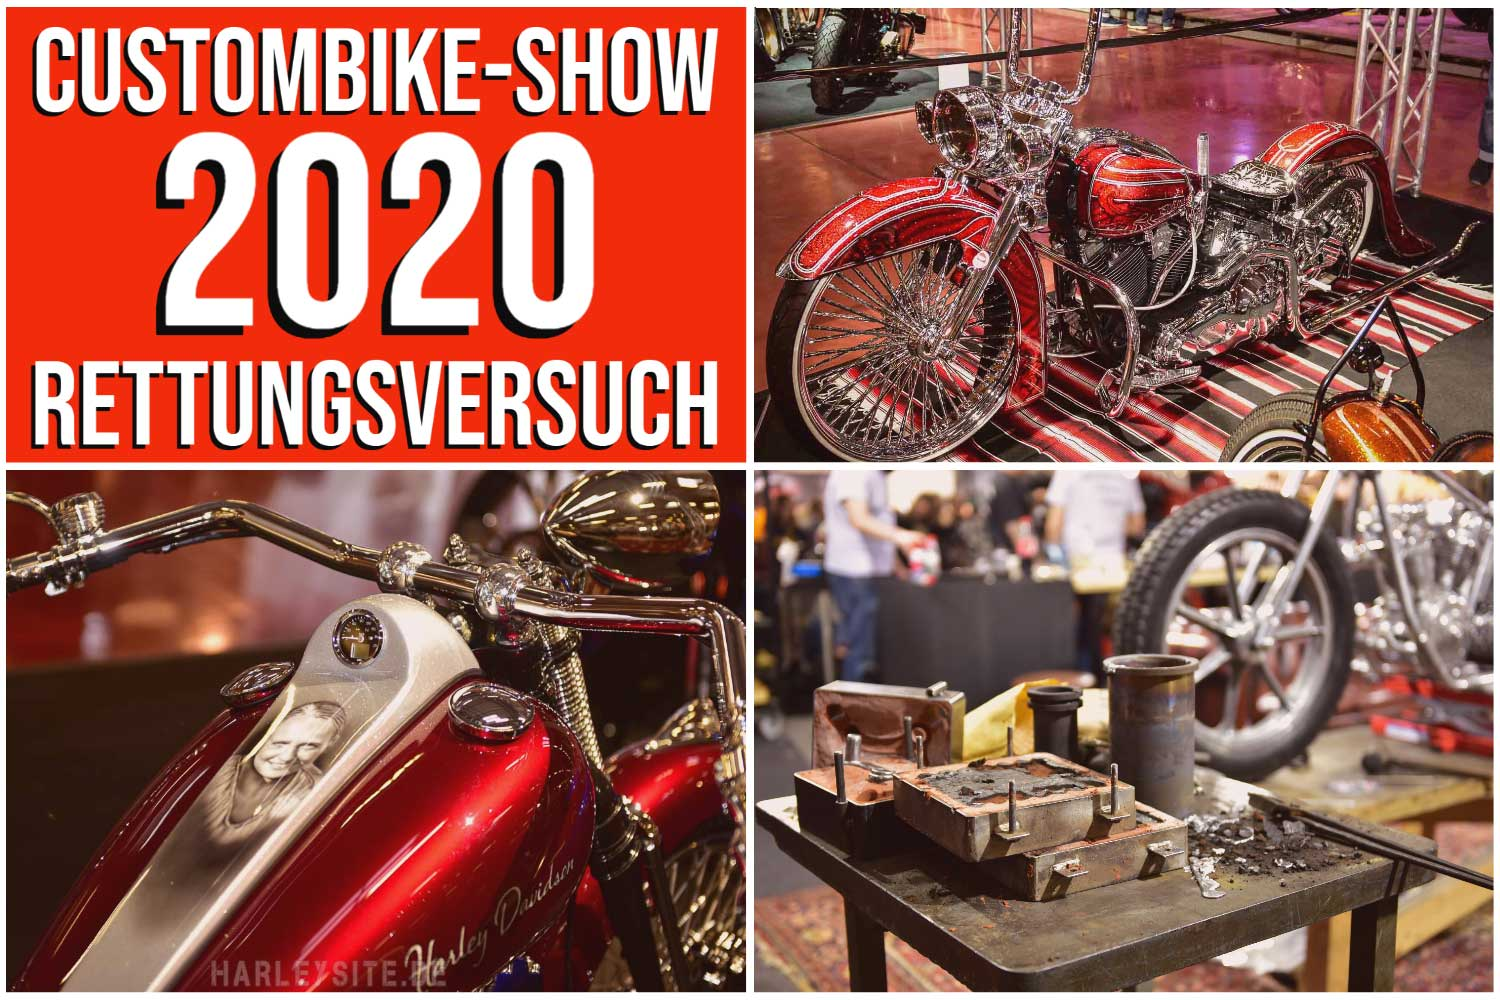 Custombike-Show 2020